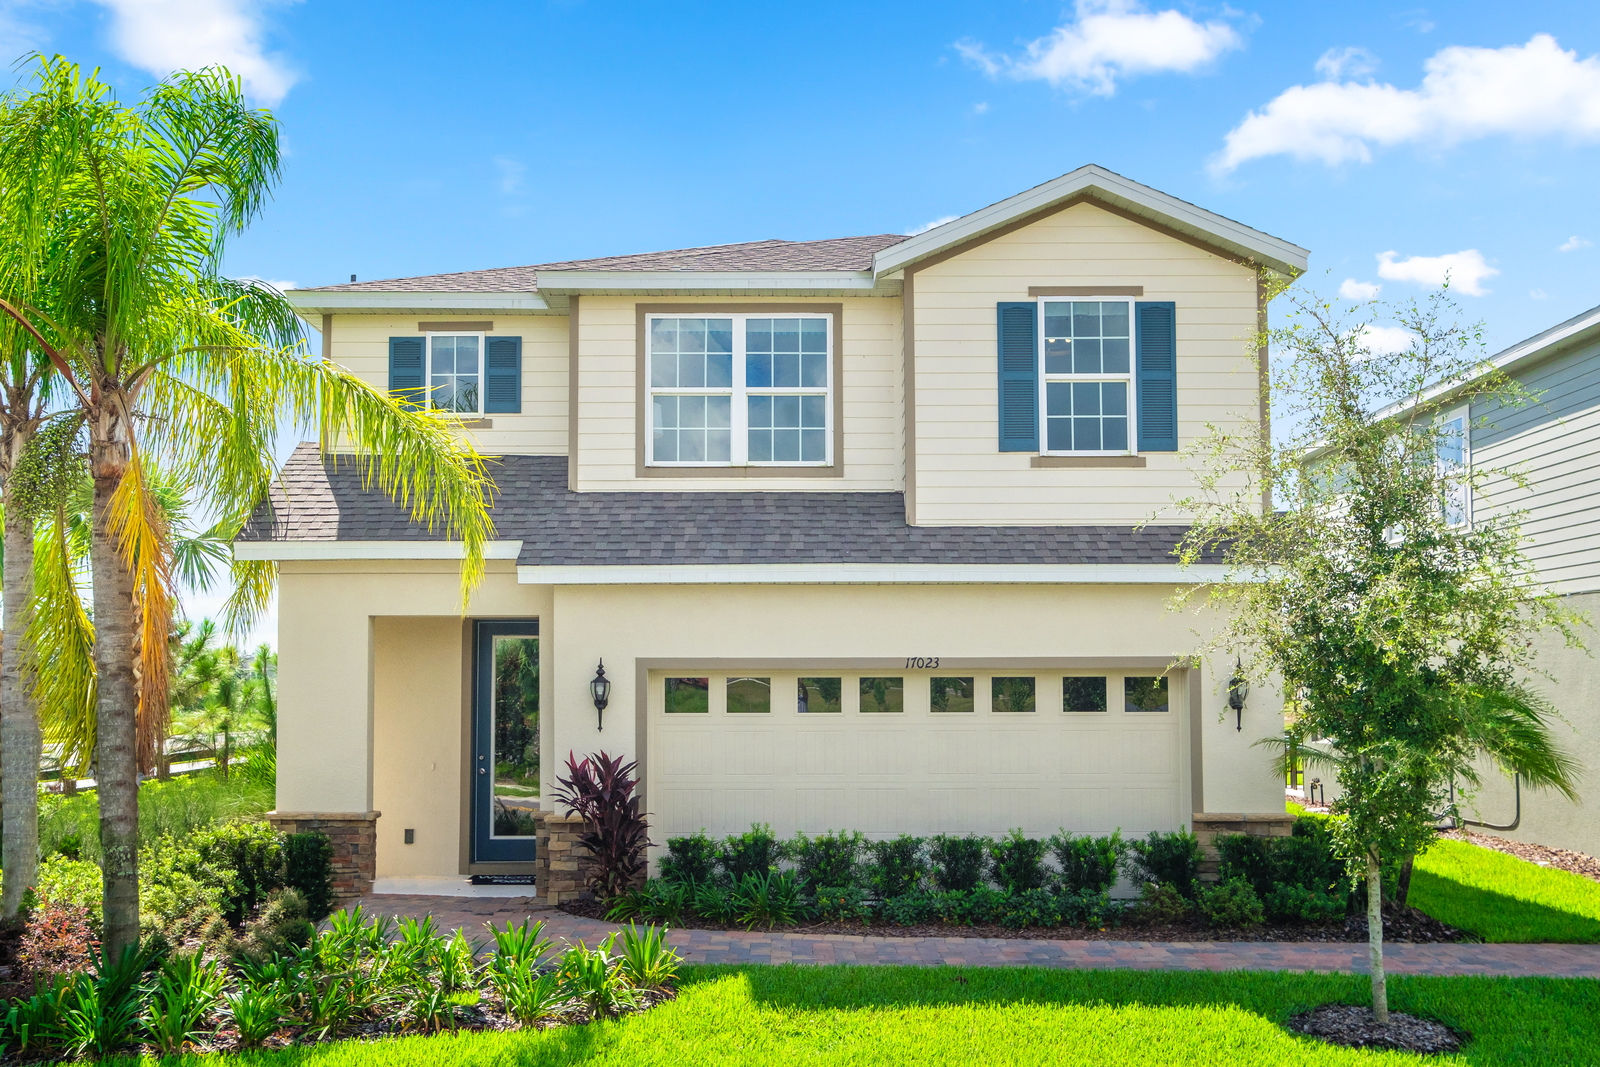 Beau New Kissimmee Community Close To Lake Nona With Resort Style Amenities.